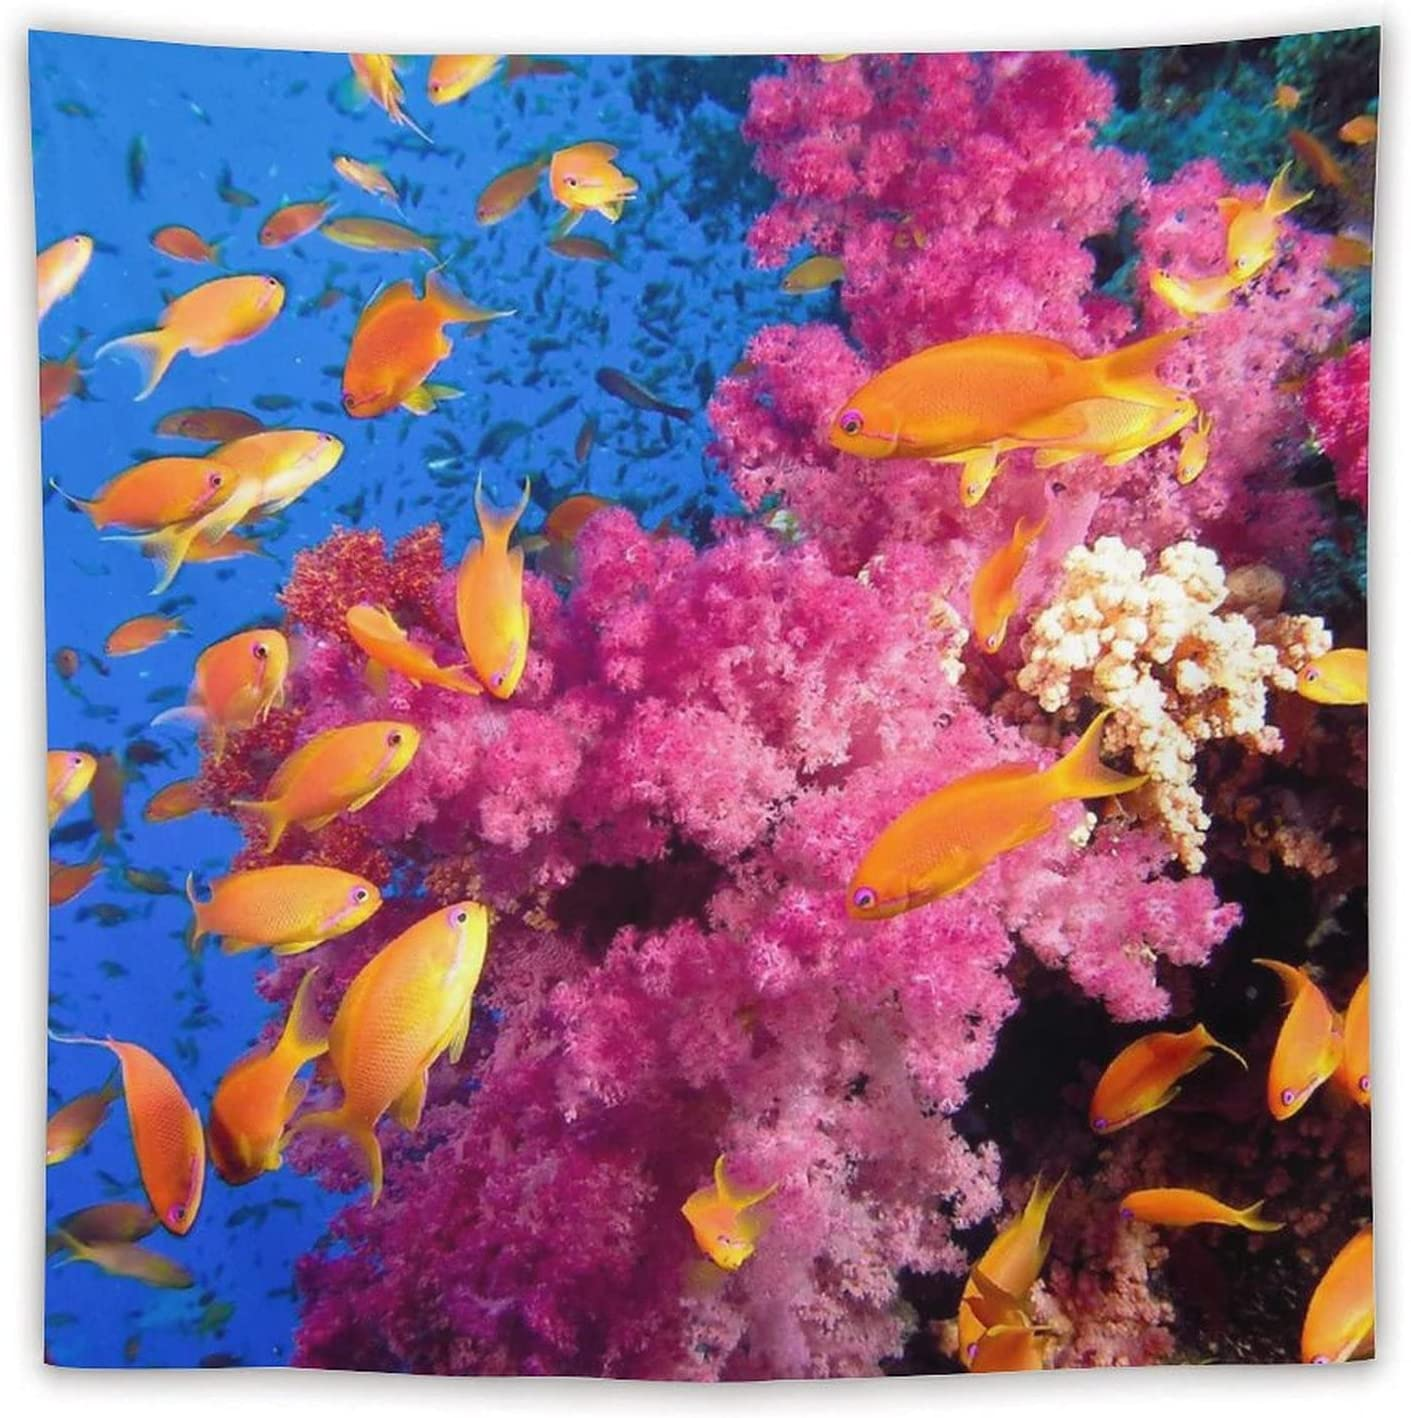 Ocean Underwater Golden Shoal of Tropical Coral Purple Fish Don't miss Max 90% OFF the campaign